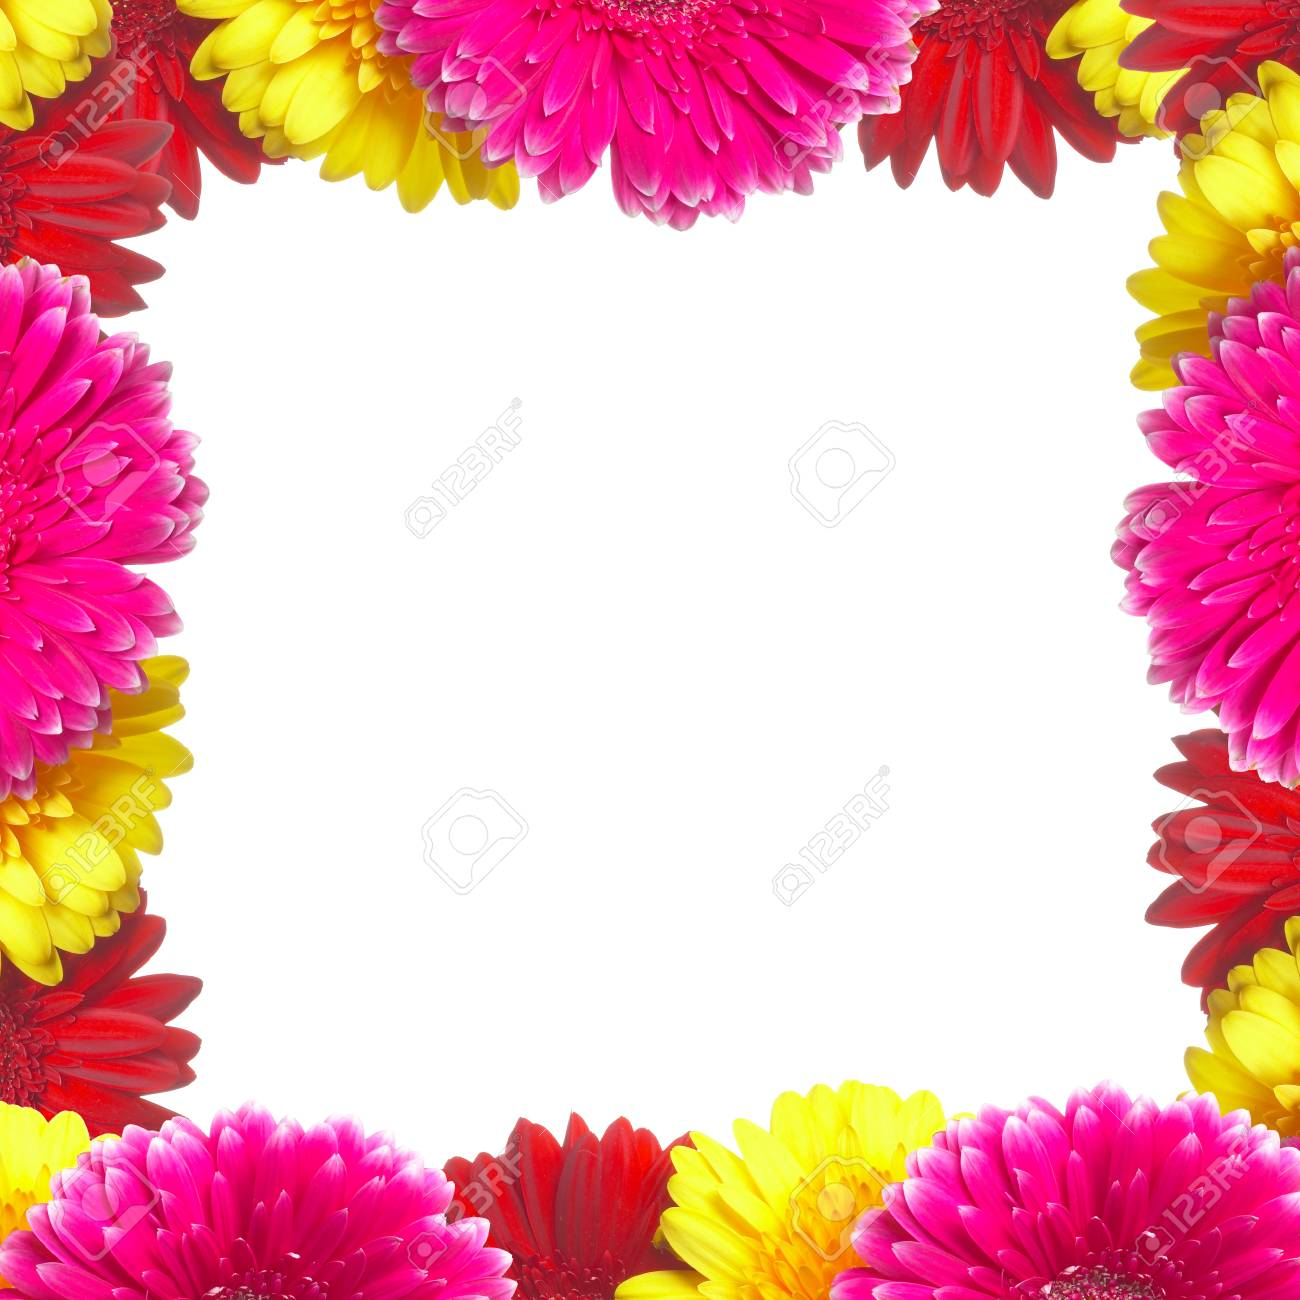 Framework from colors gerbers on a white background Stock Photo - 1612844